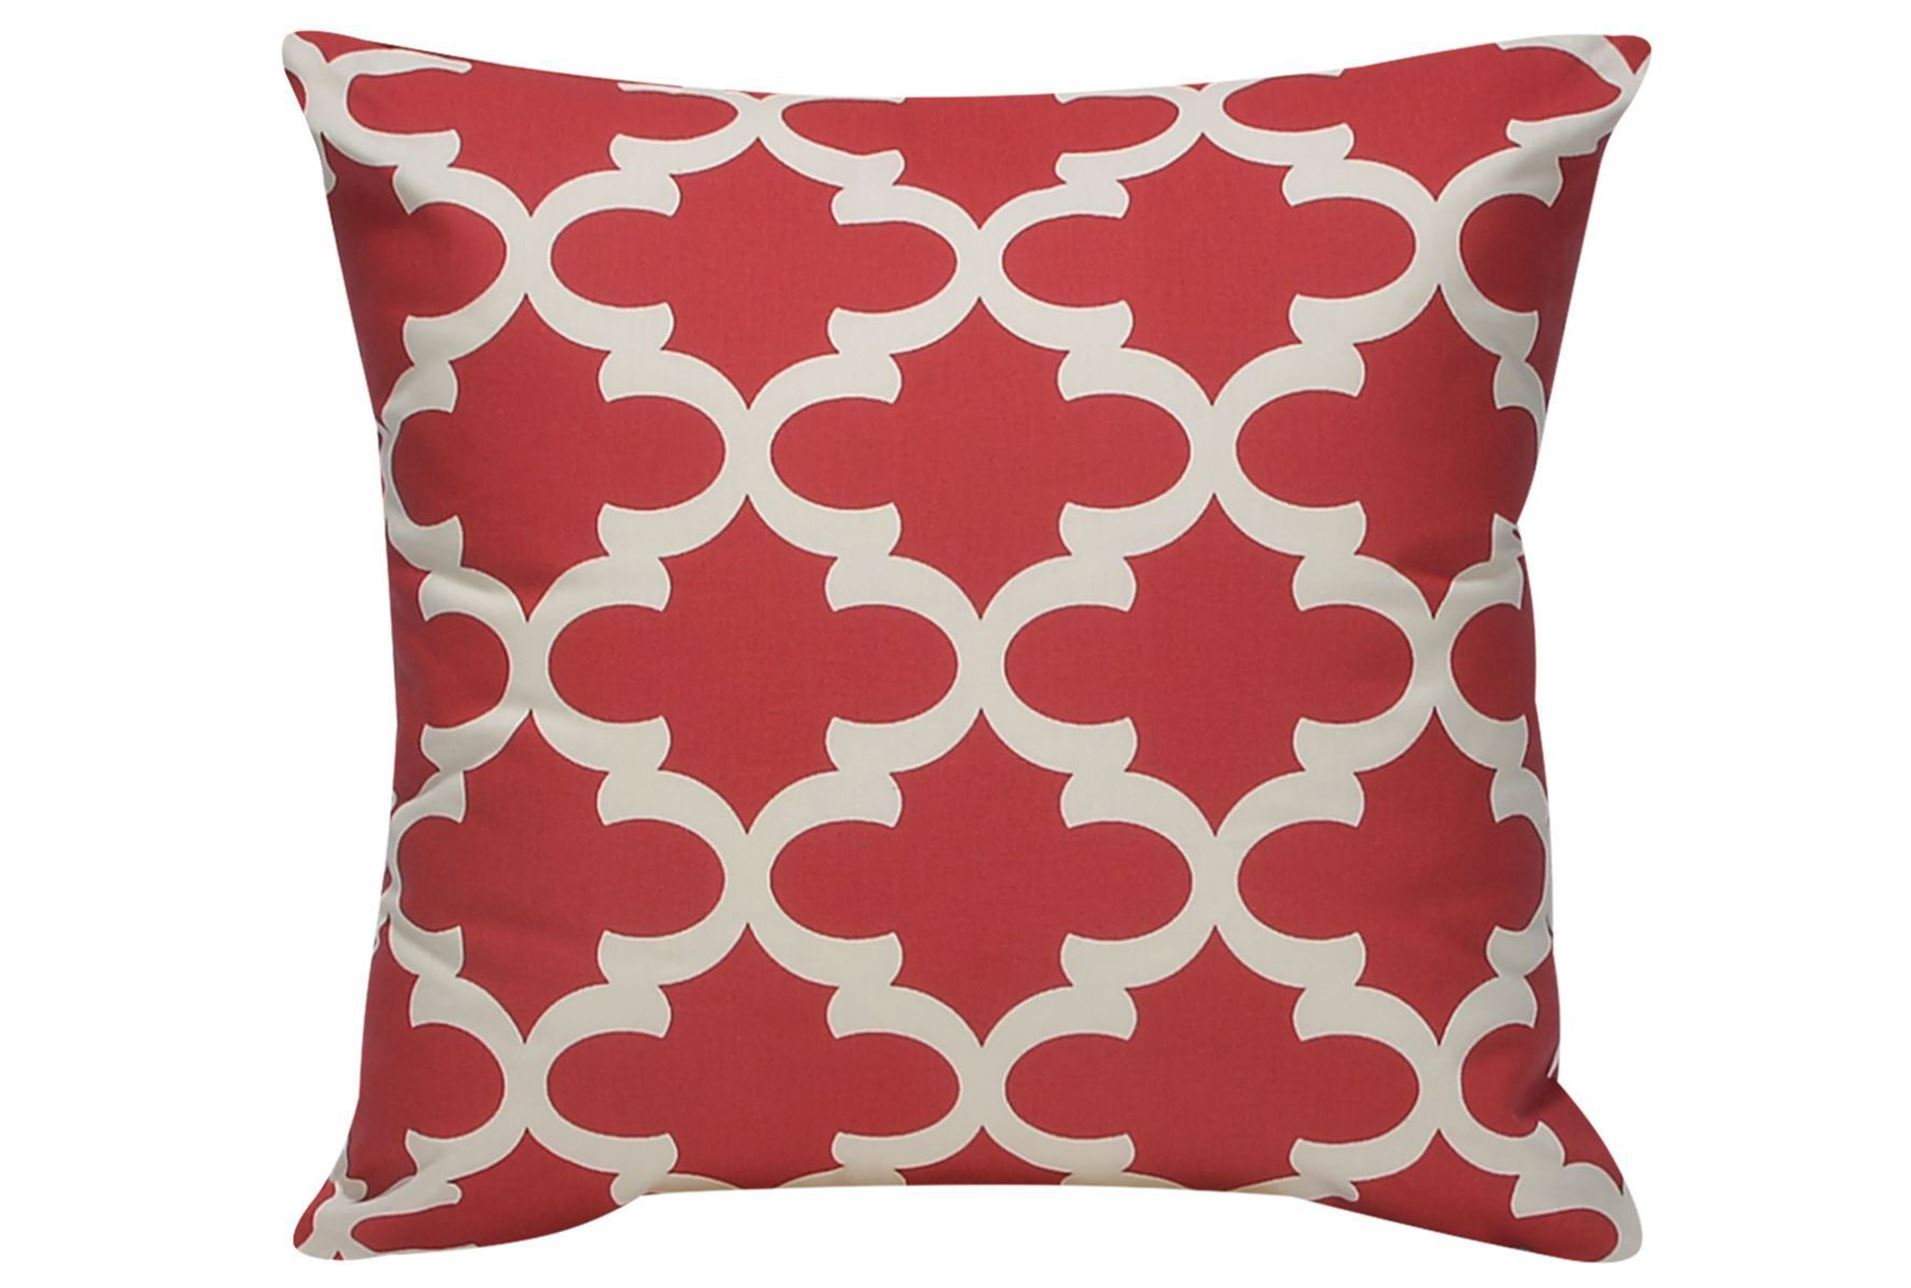 Decorative Pillows Living Spaces : Accent Pillow-Red Geo 22X22 - Living Spaces